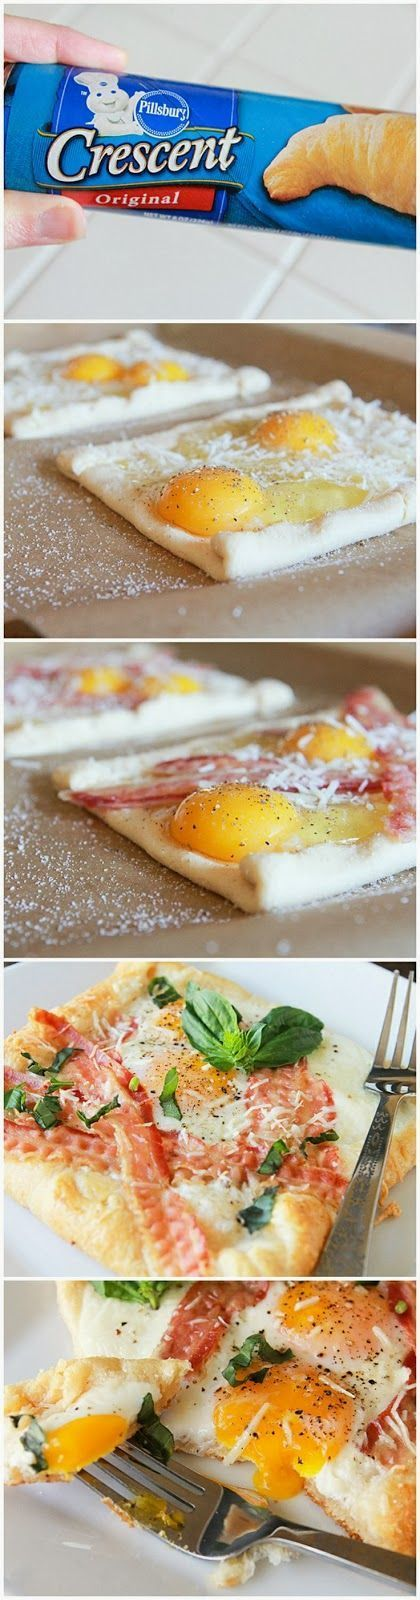 This is the best idea ever #breakfast #recipe #brunch #easy #recipes